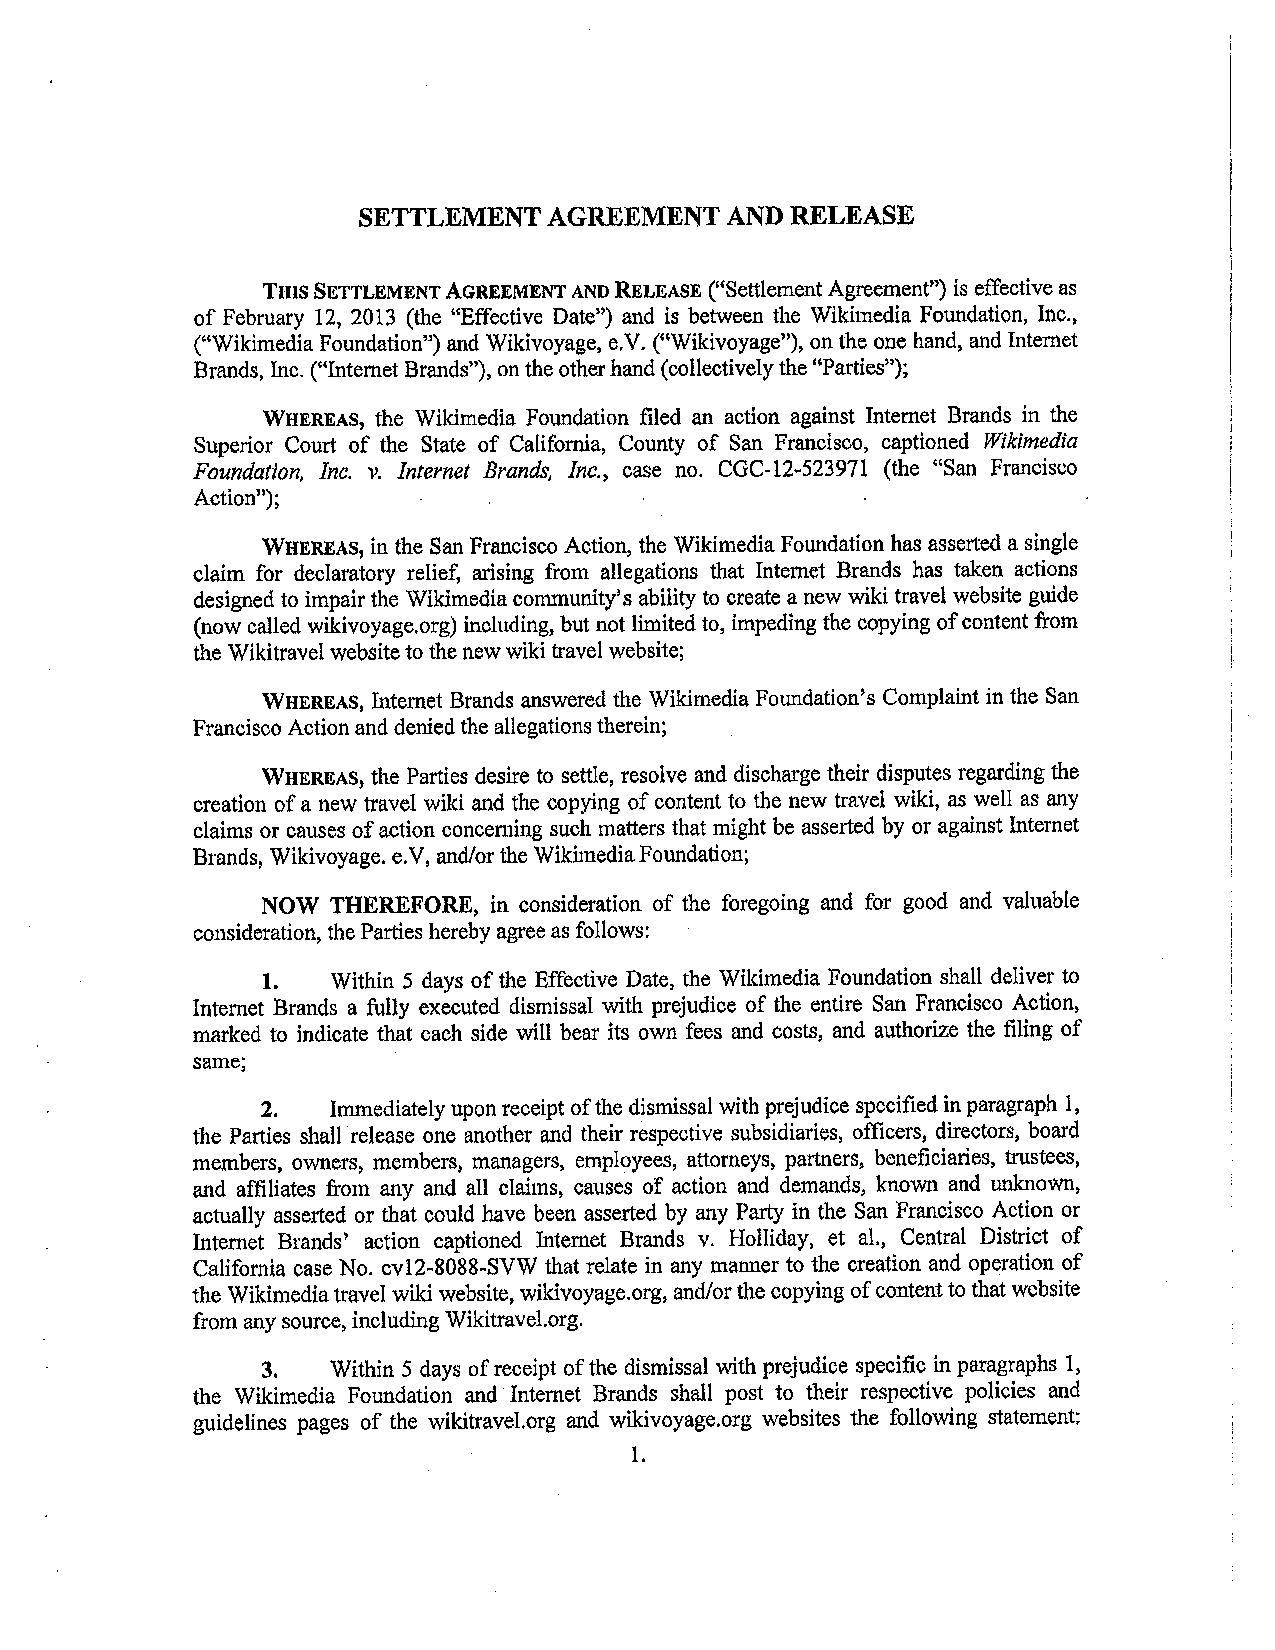 filewmf ib 021213 signed settlement agreement pdf wikimedia